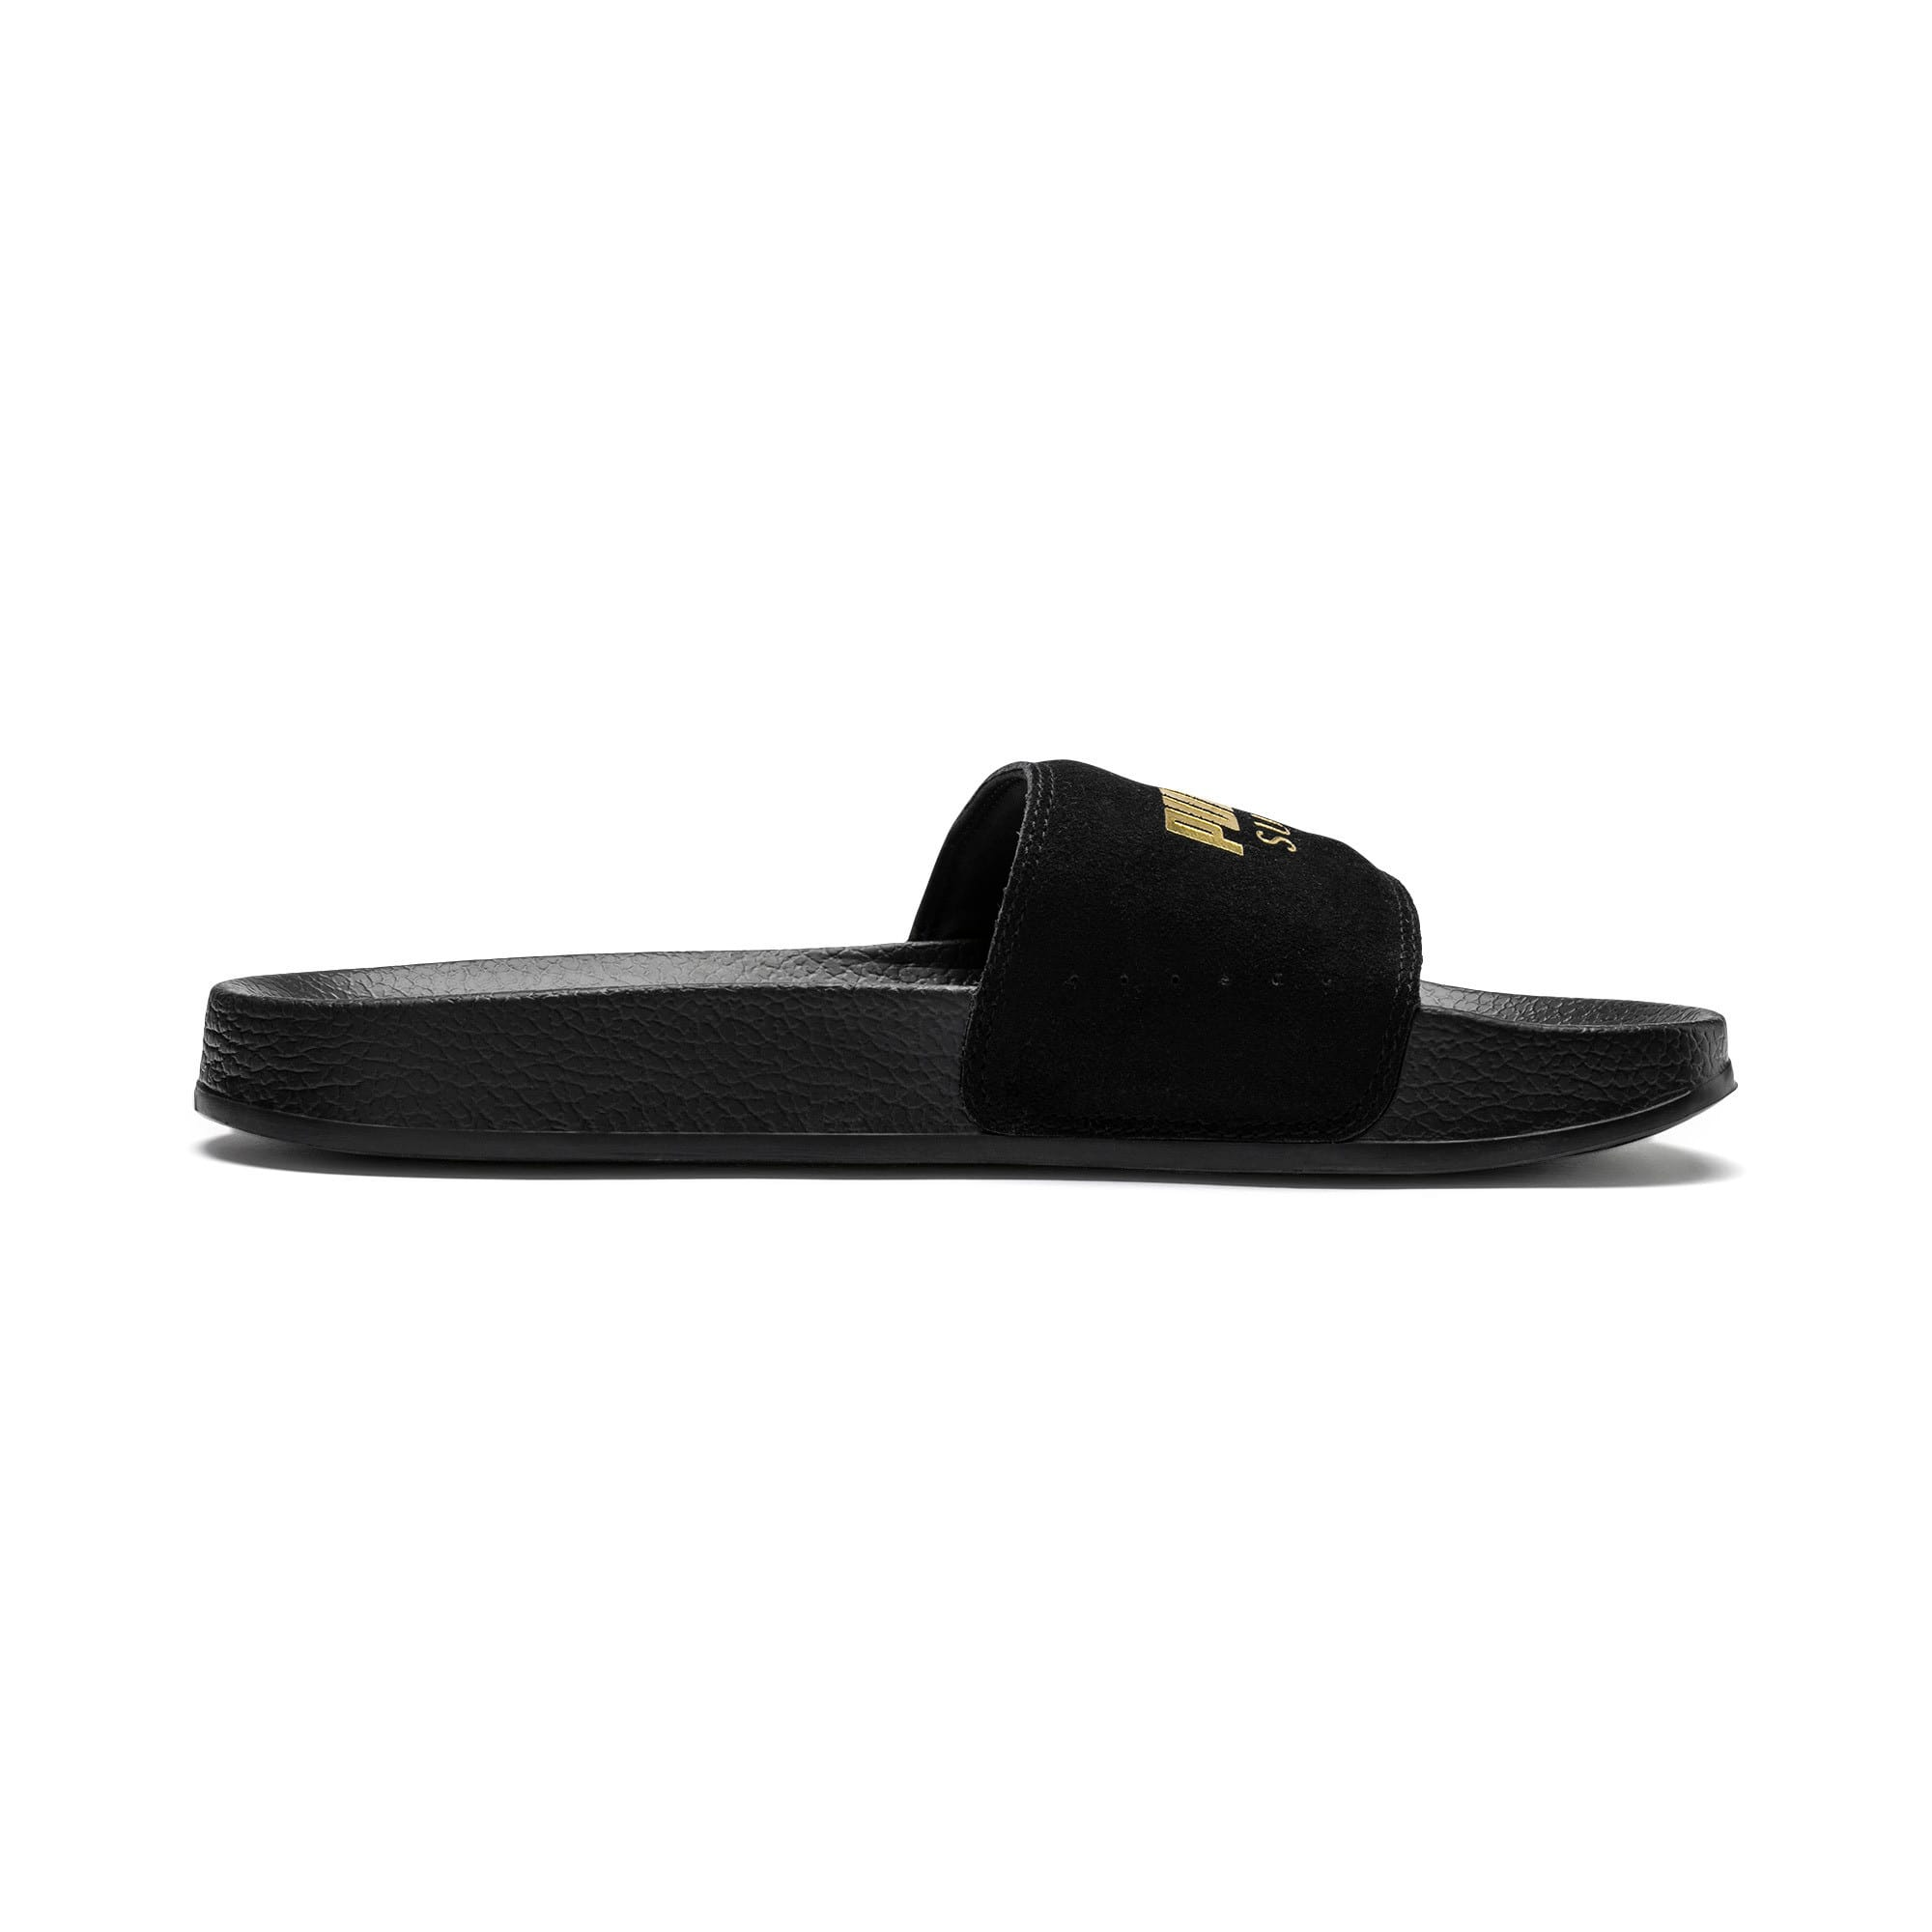 Thumbnail 5 of Suede Leadcat, Puma Black-Puma Team Gold, medium